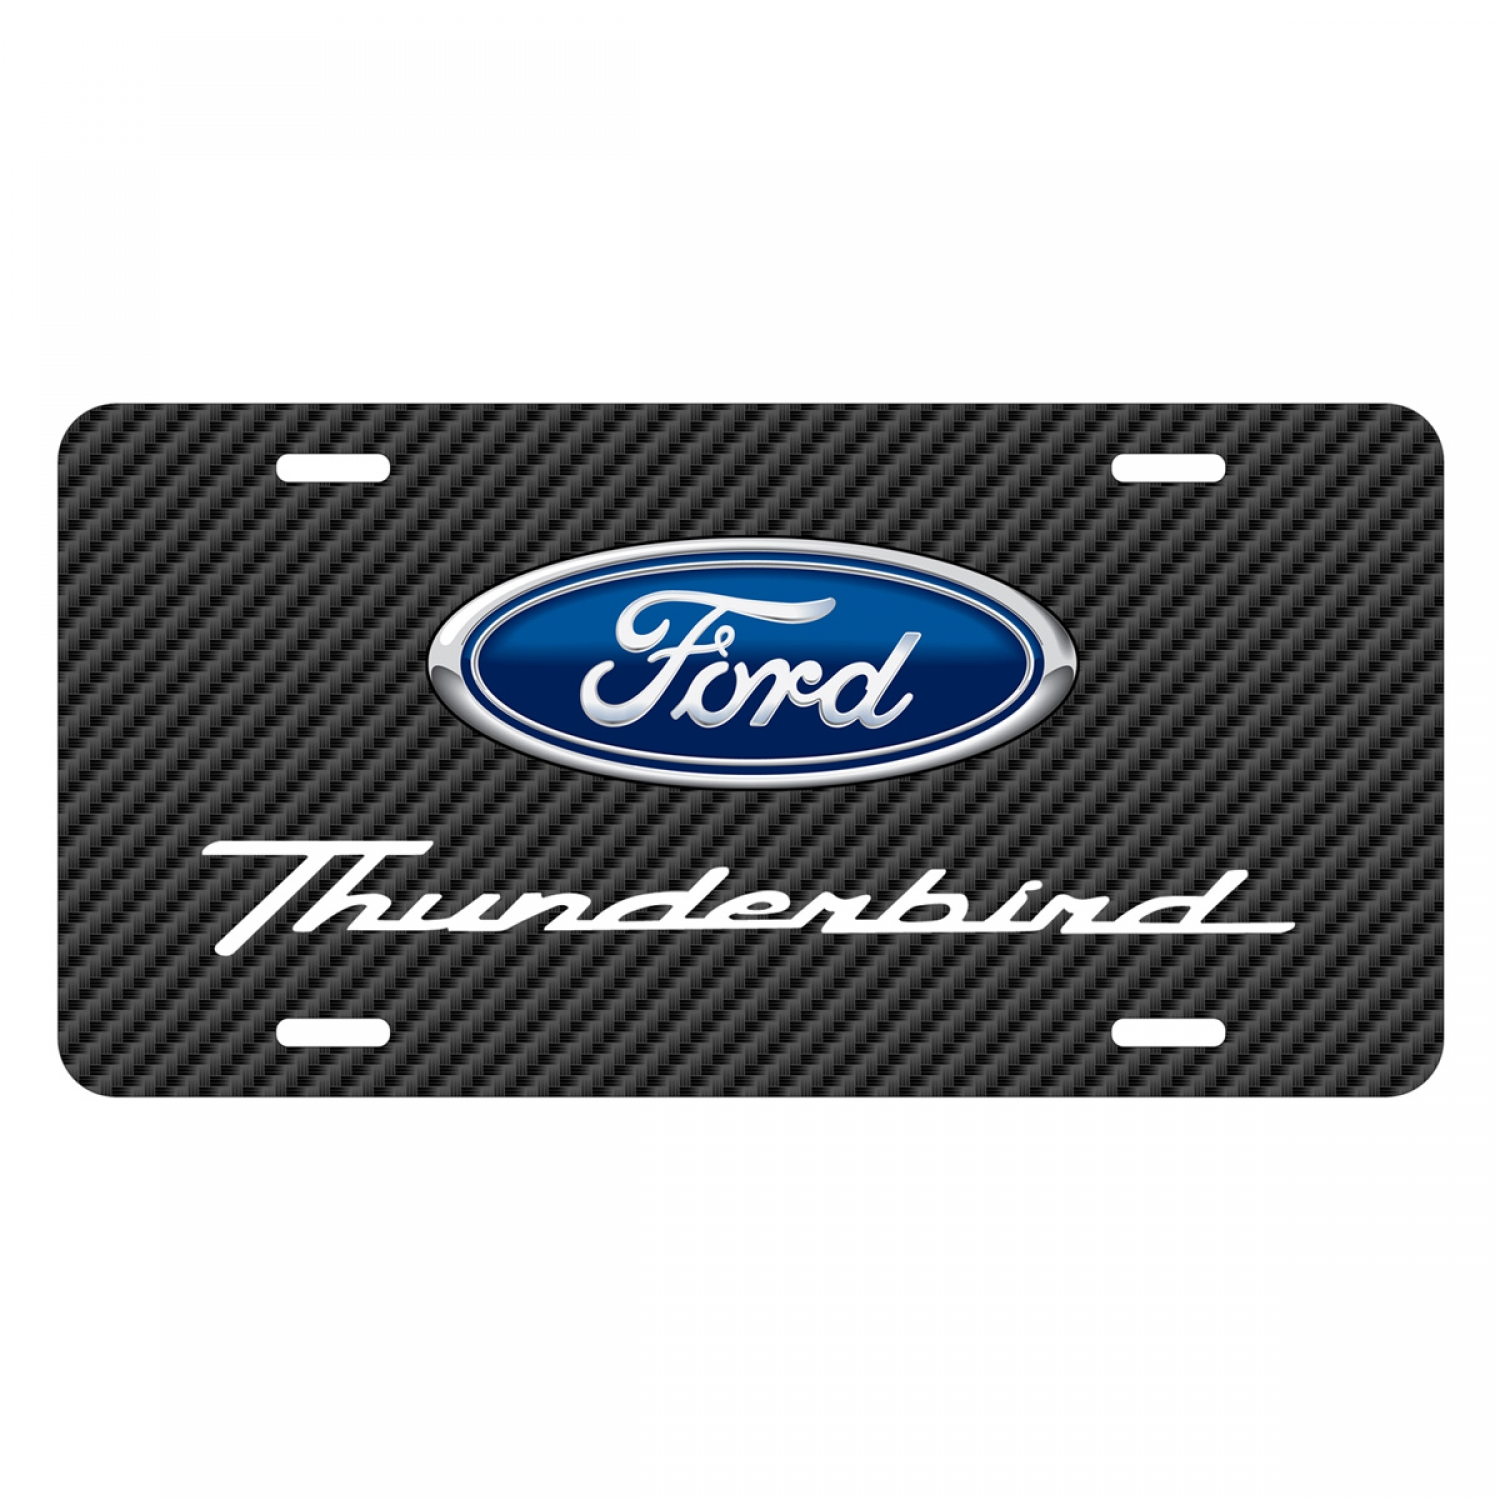 Ford Thunderbird Black Carbon Fiber Texture Graphic UV Metal License Plate